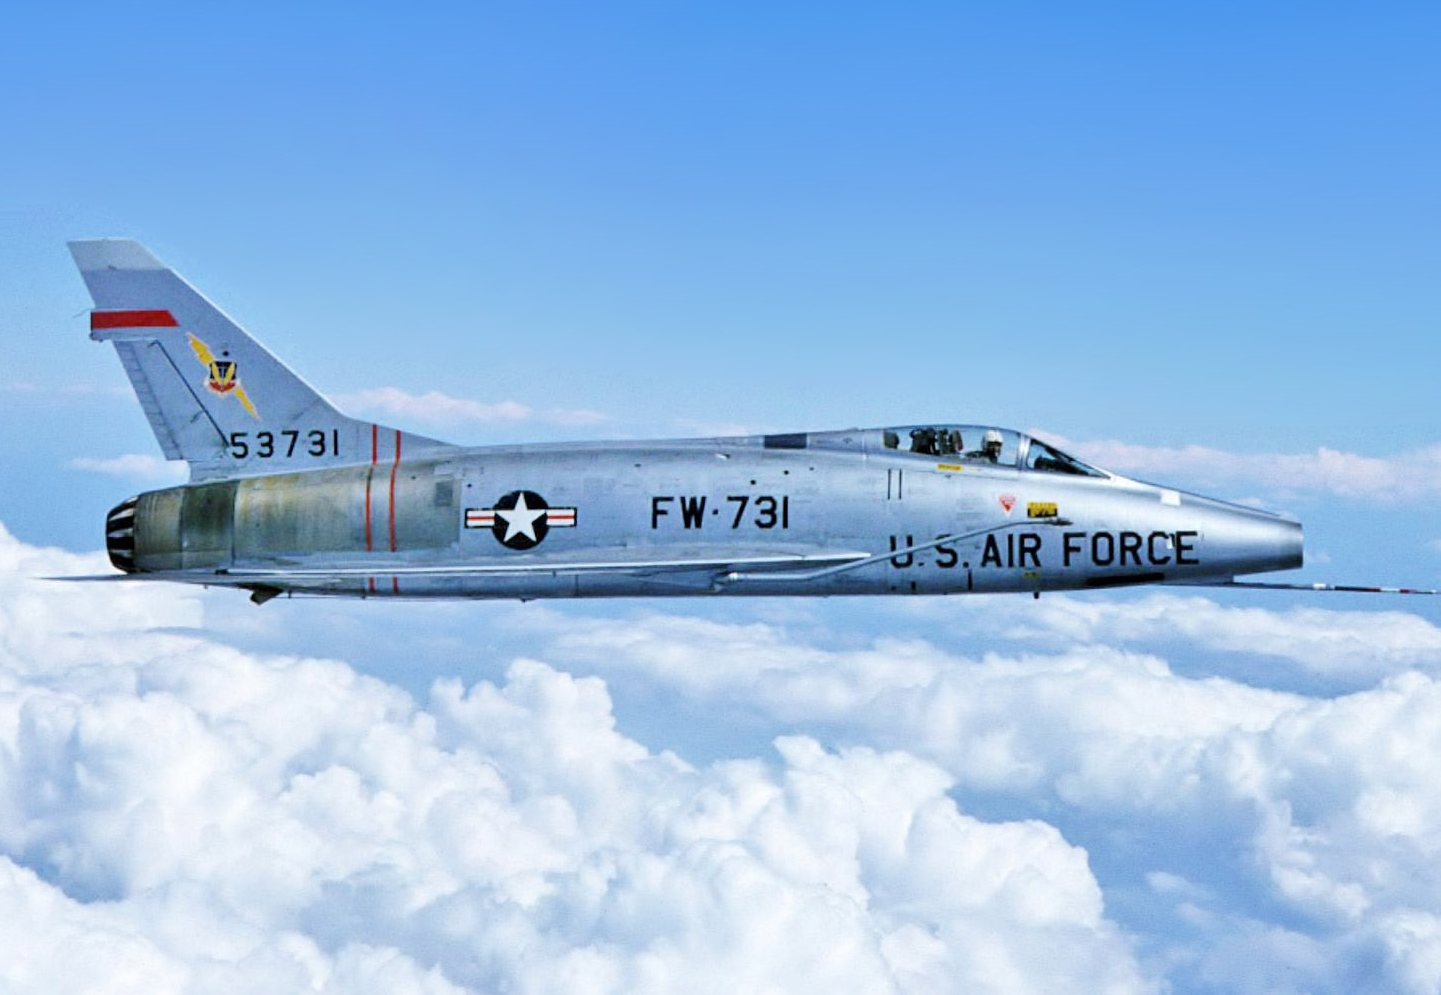 The F-100 Super Sabre Was the Air Force's First Supersonic